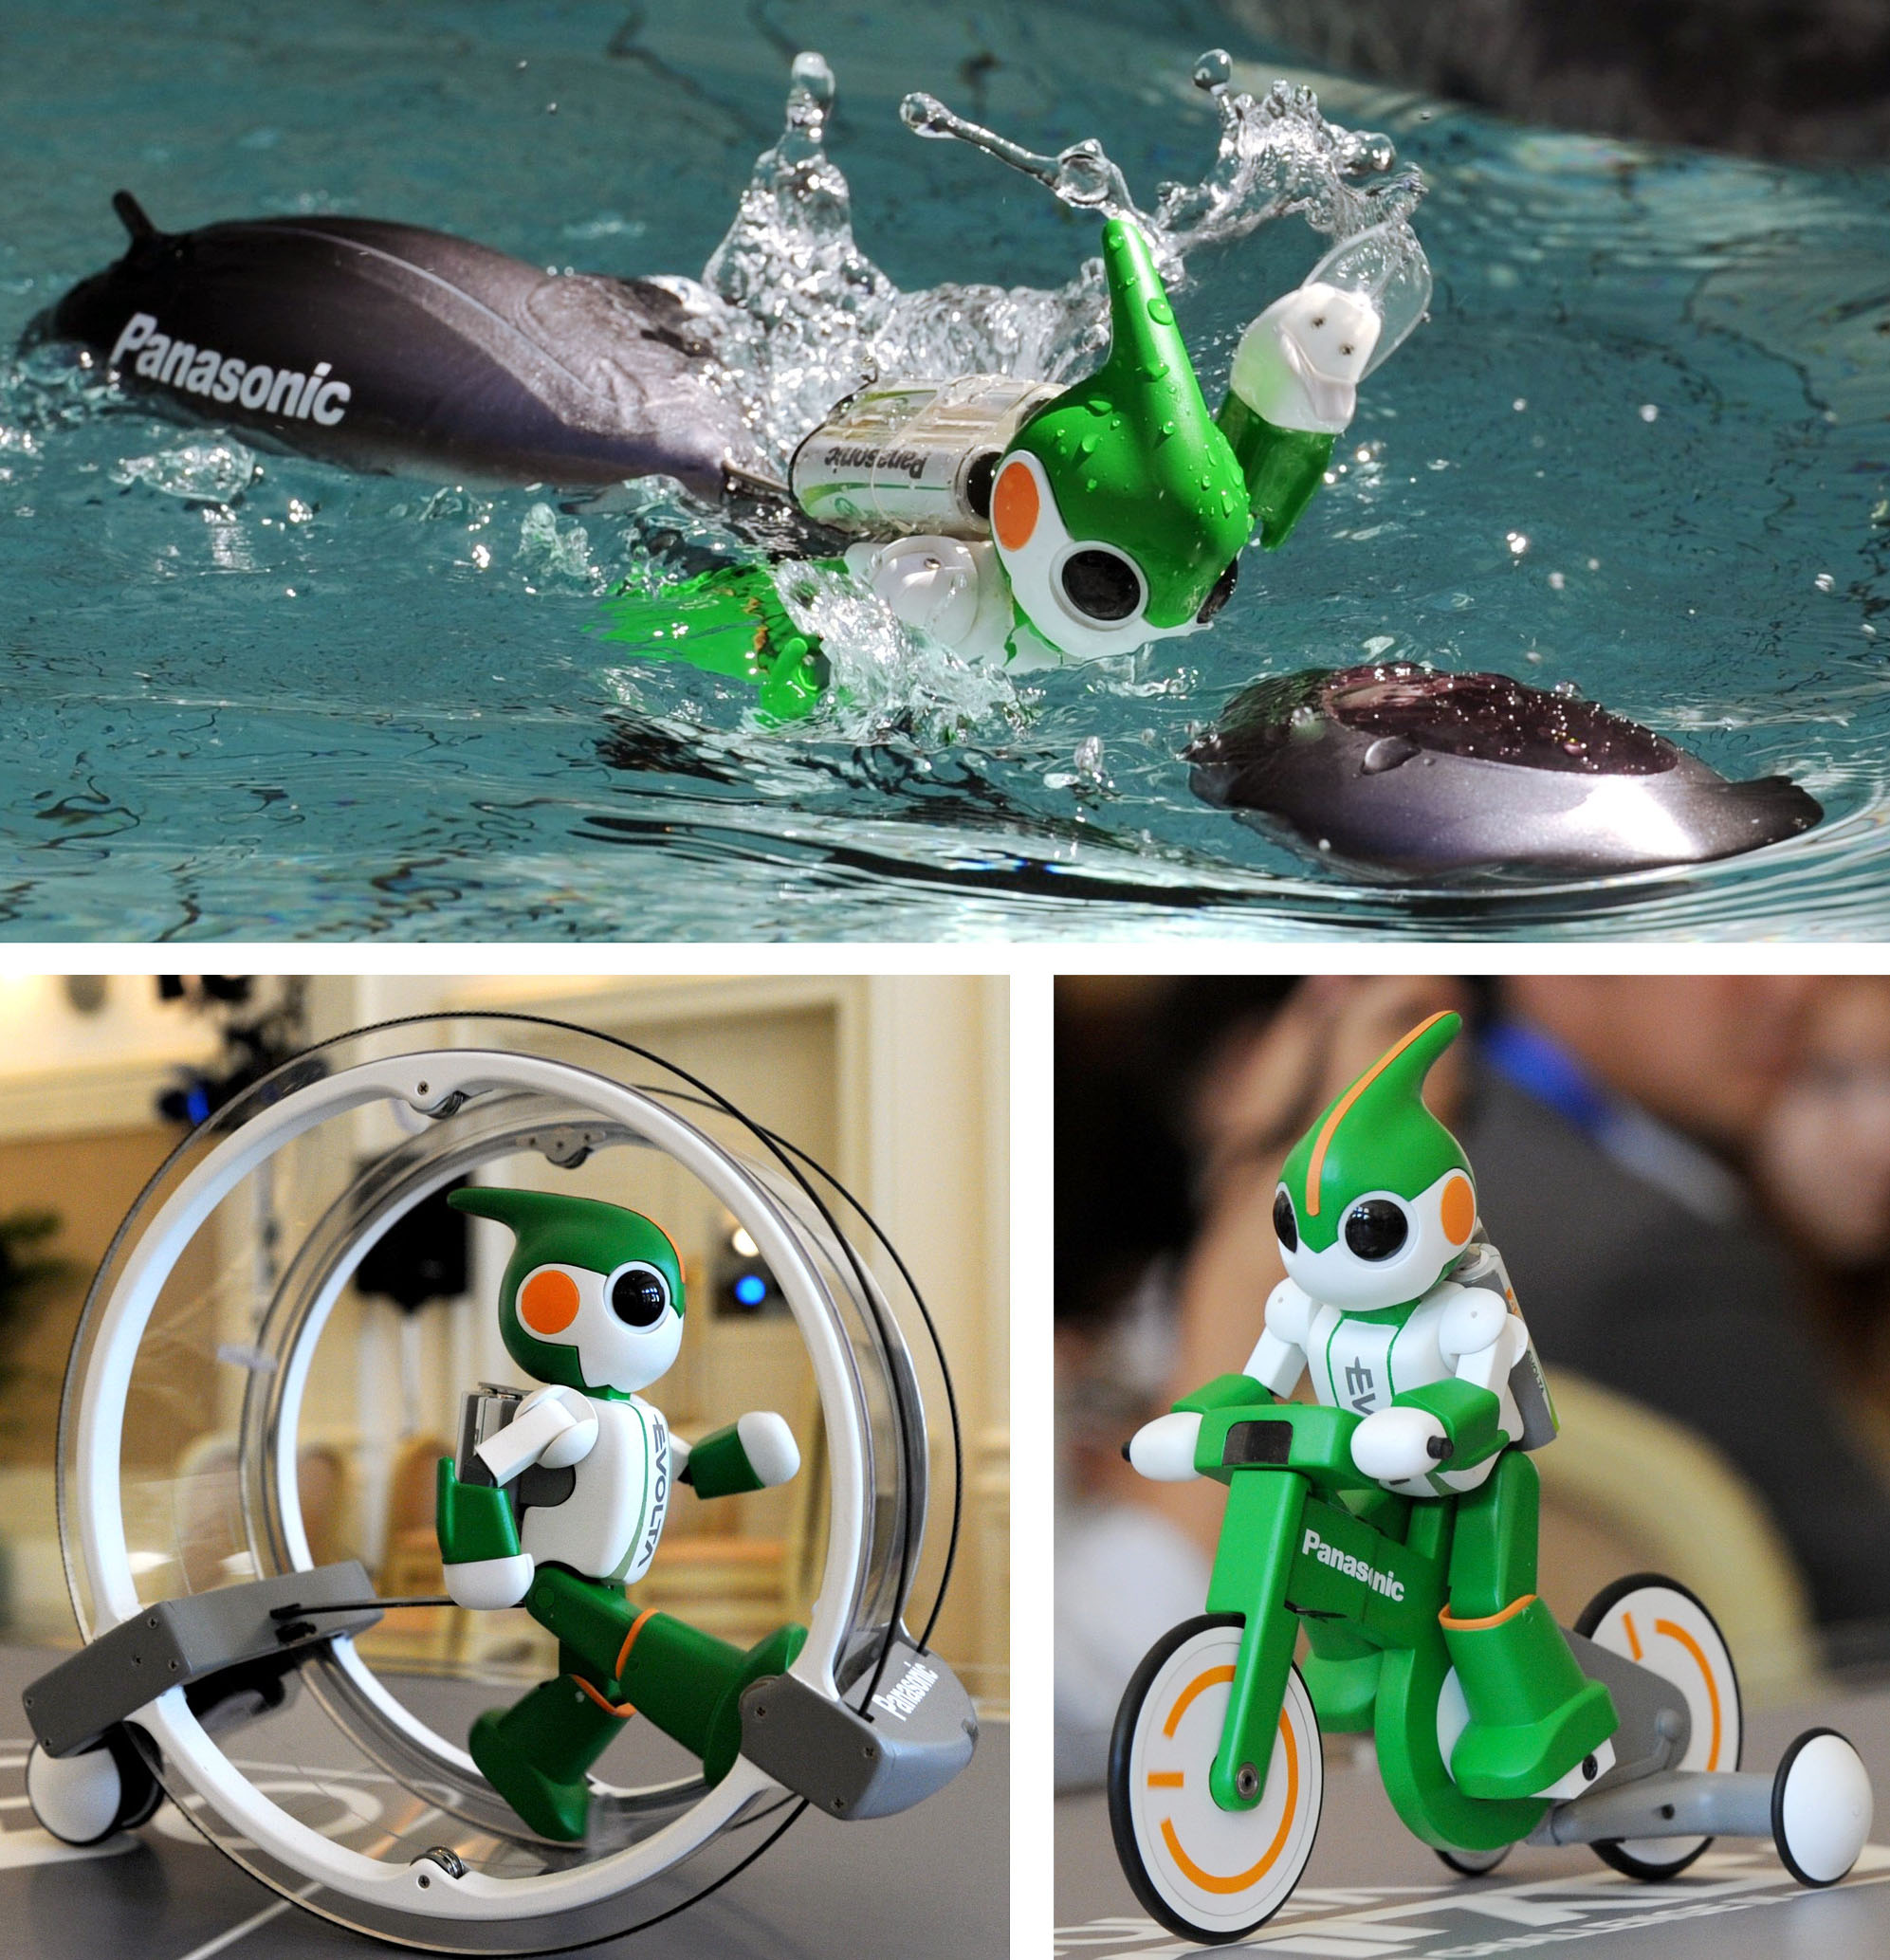 Charging on: These three versions of Panasonic's Evolta-kun robot ? one that swims, another that runs and a third that cycles ? will be used in a triathlon challenge next month in Hawaii. | KYODO PHOTO